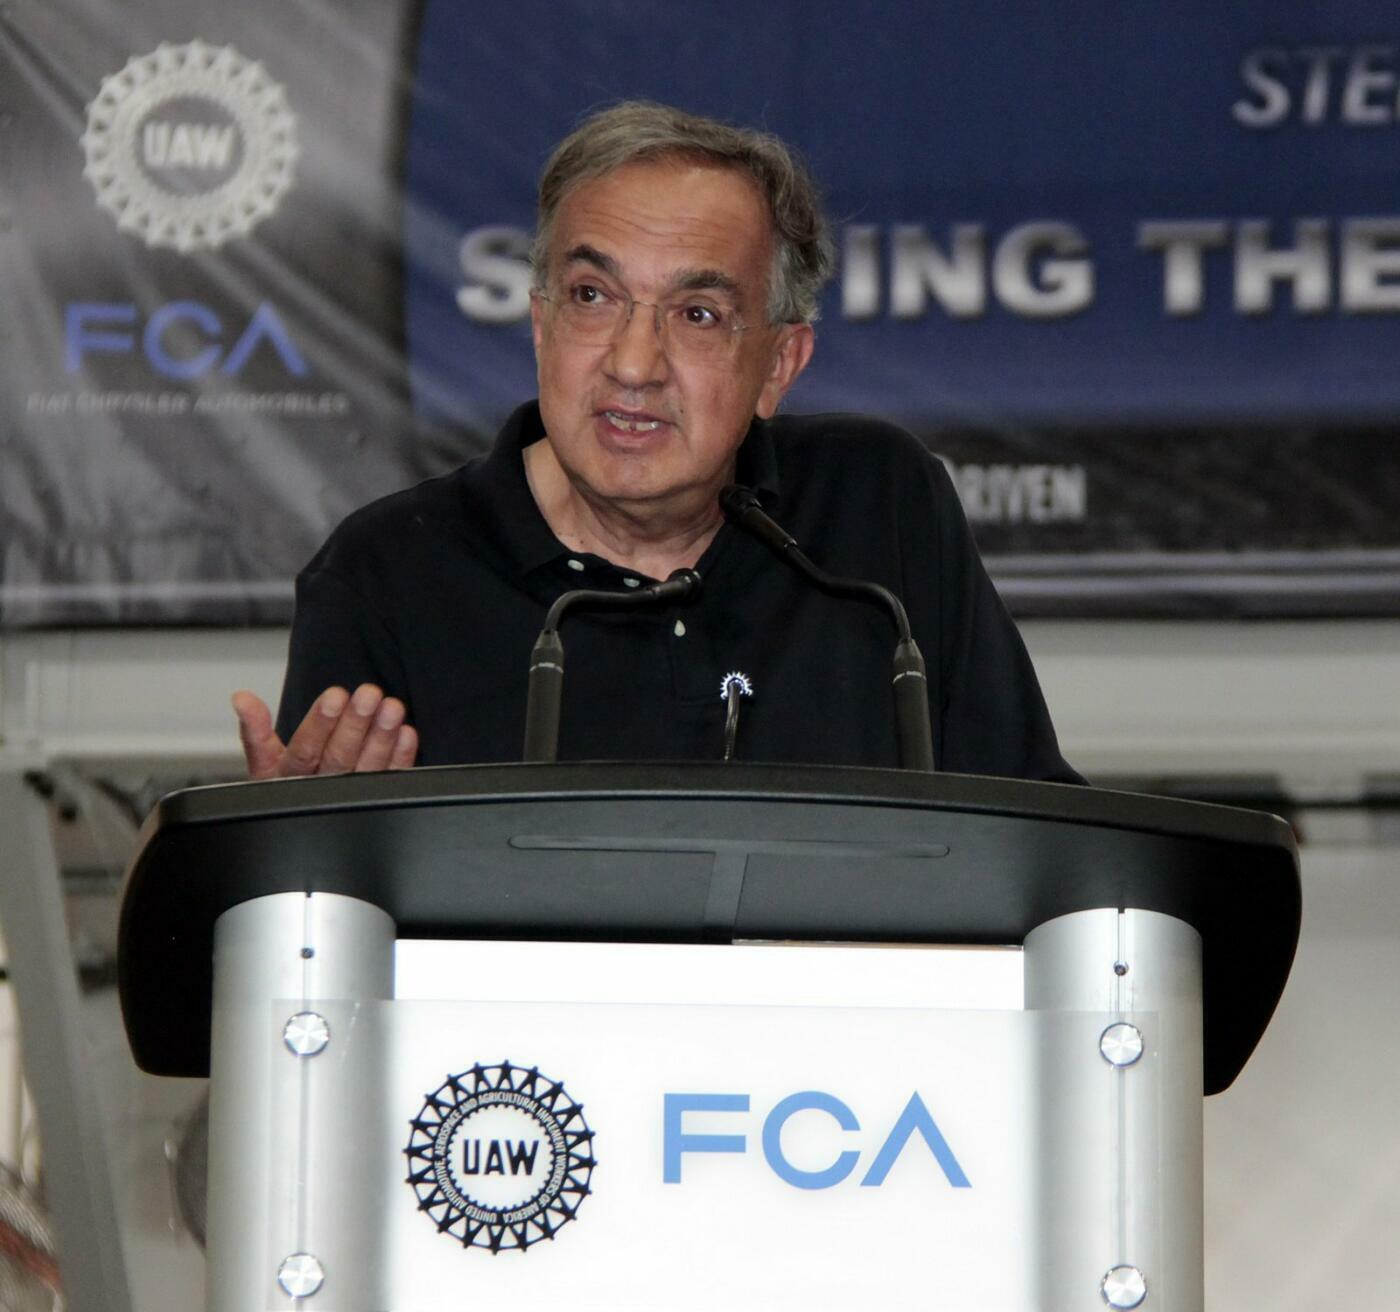 Sergio Marchionne World Car Person of the Year 2019